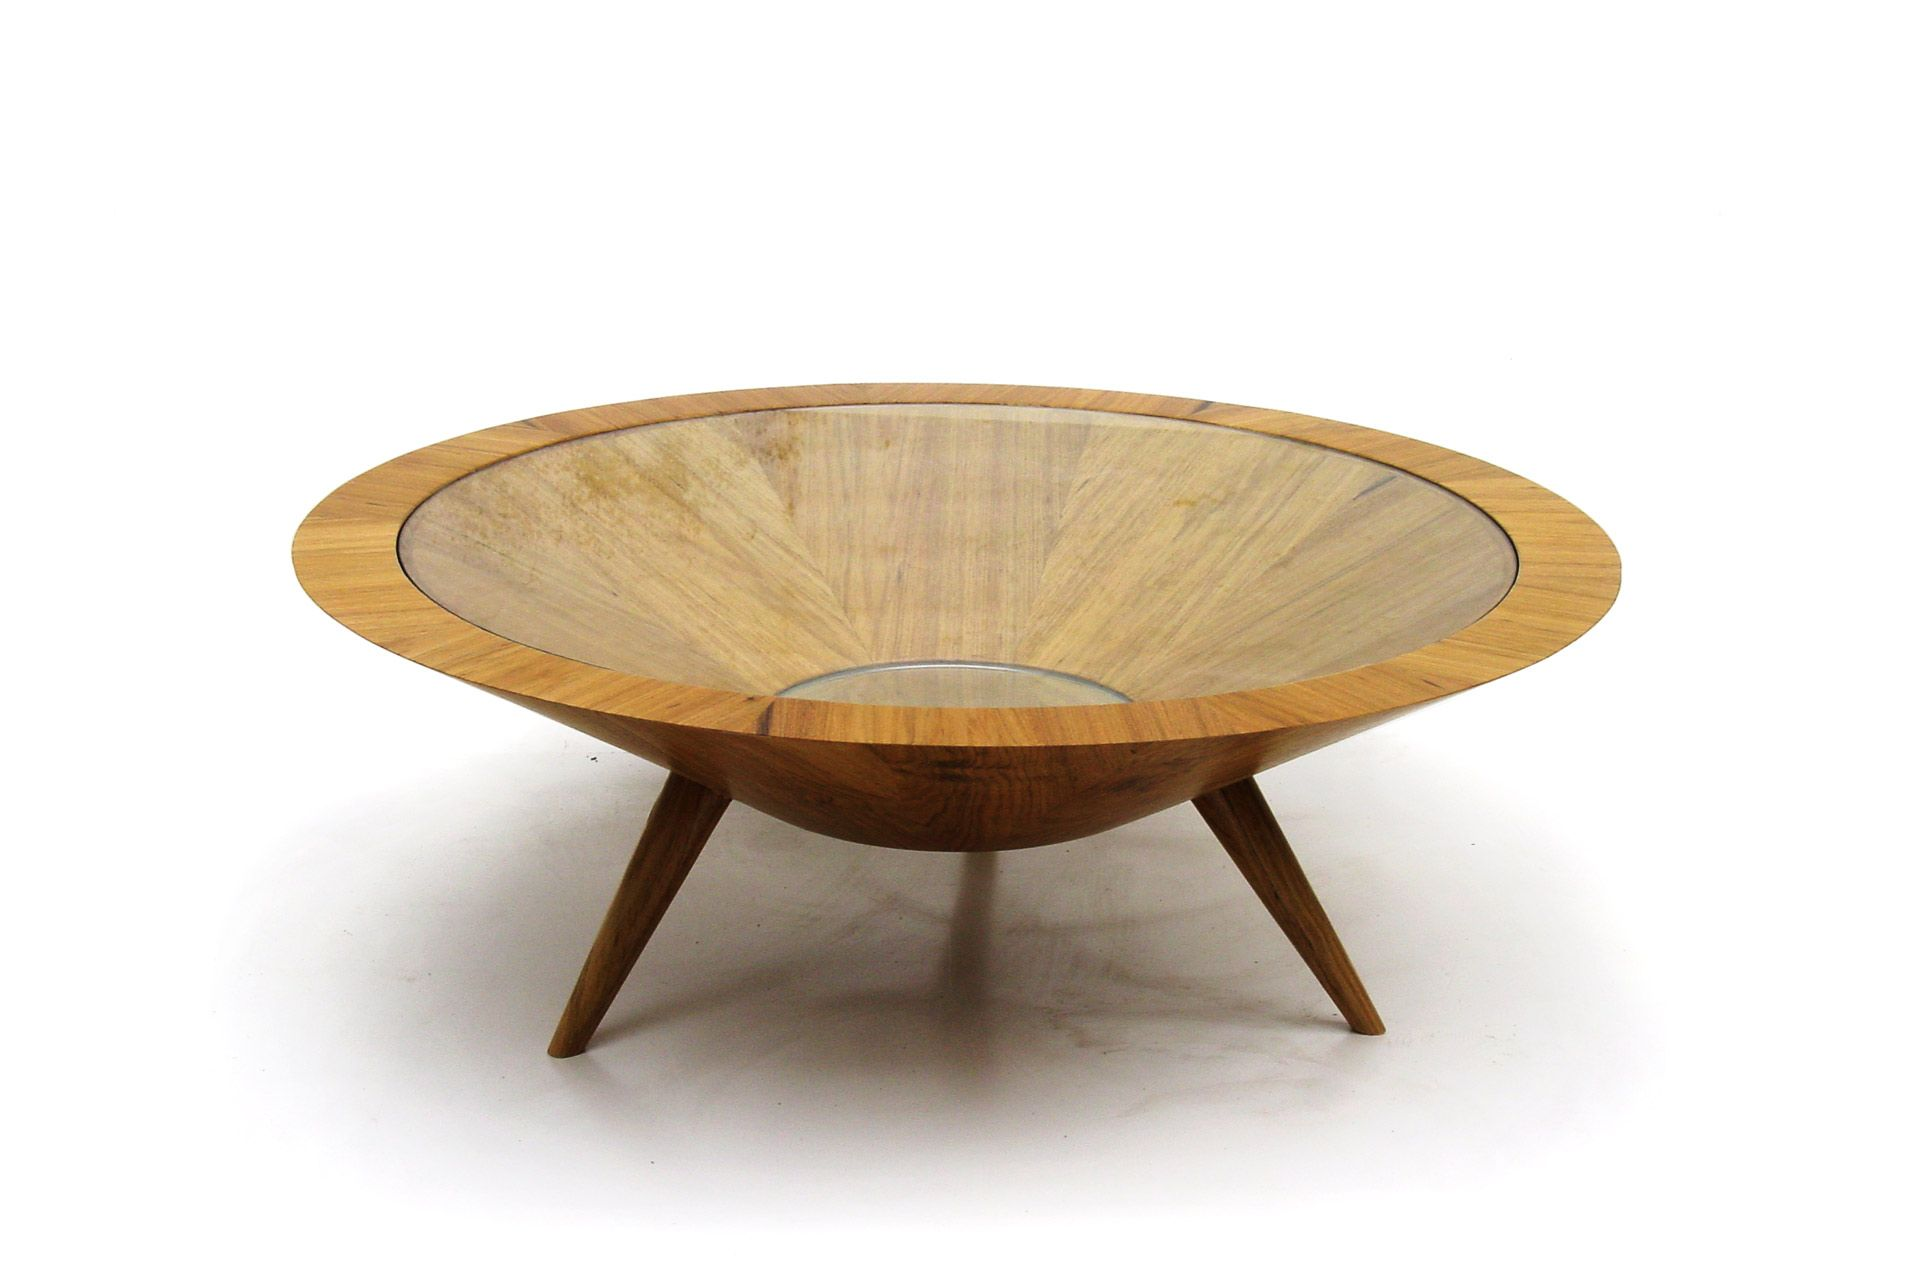 Pin By Edgarsoto Moyano On Hotel Coffee Table Table 2 Coffee Tables [ 1269 x 1920 Pixel ]